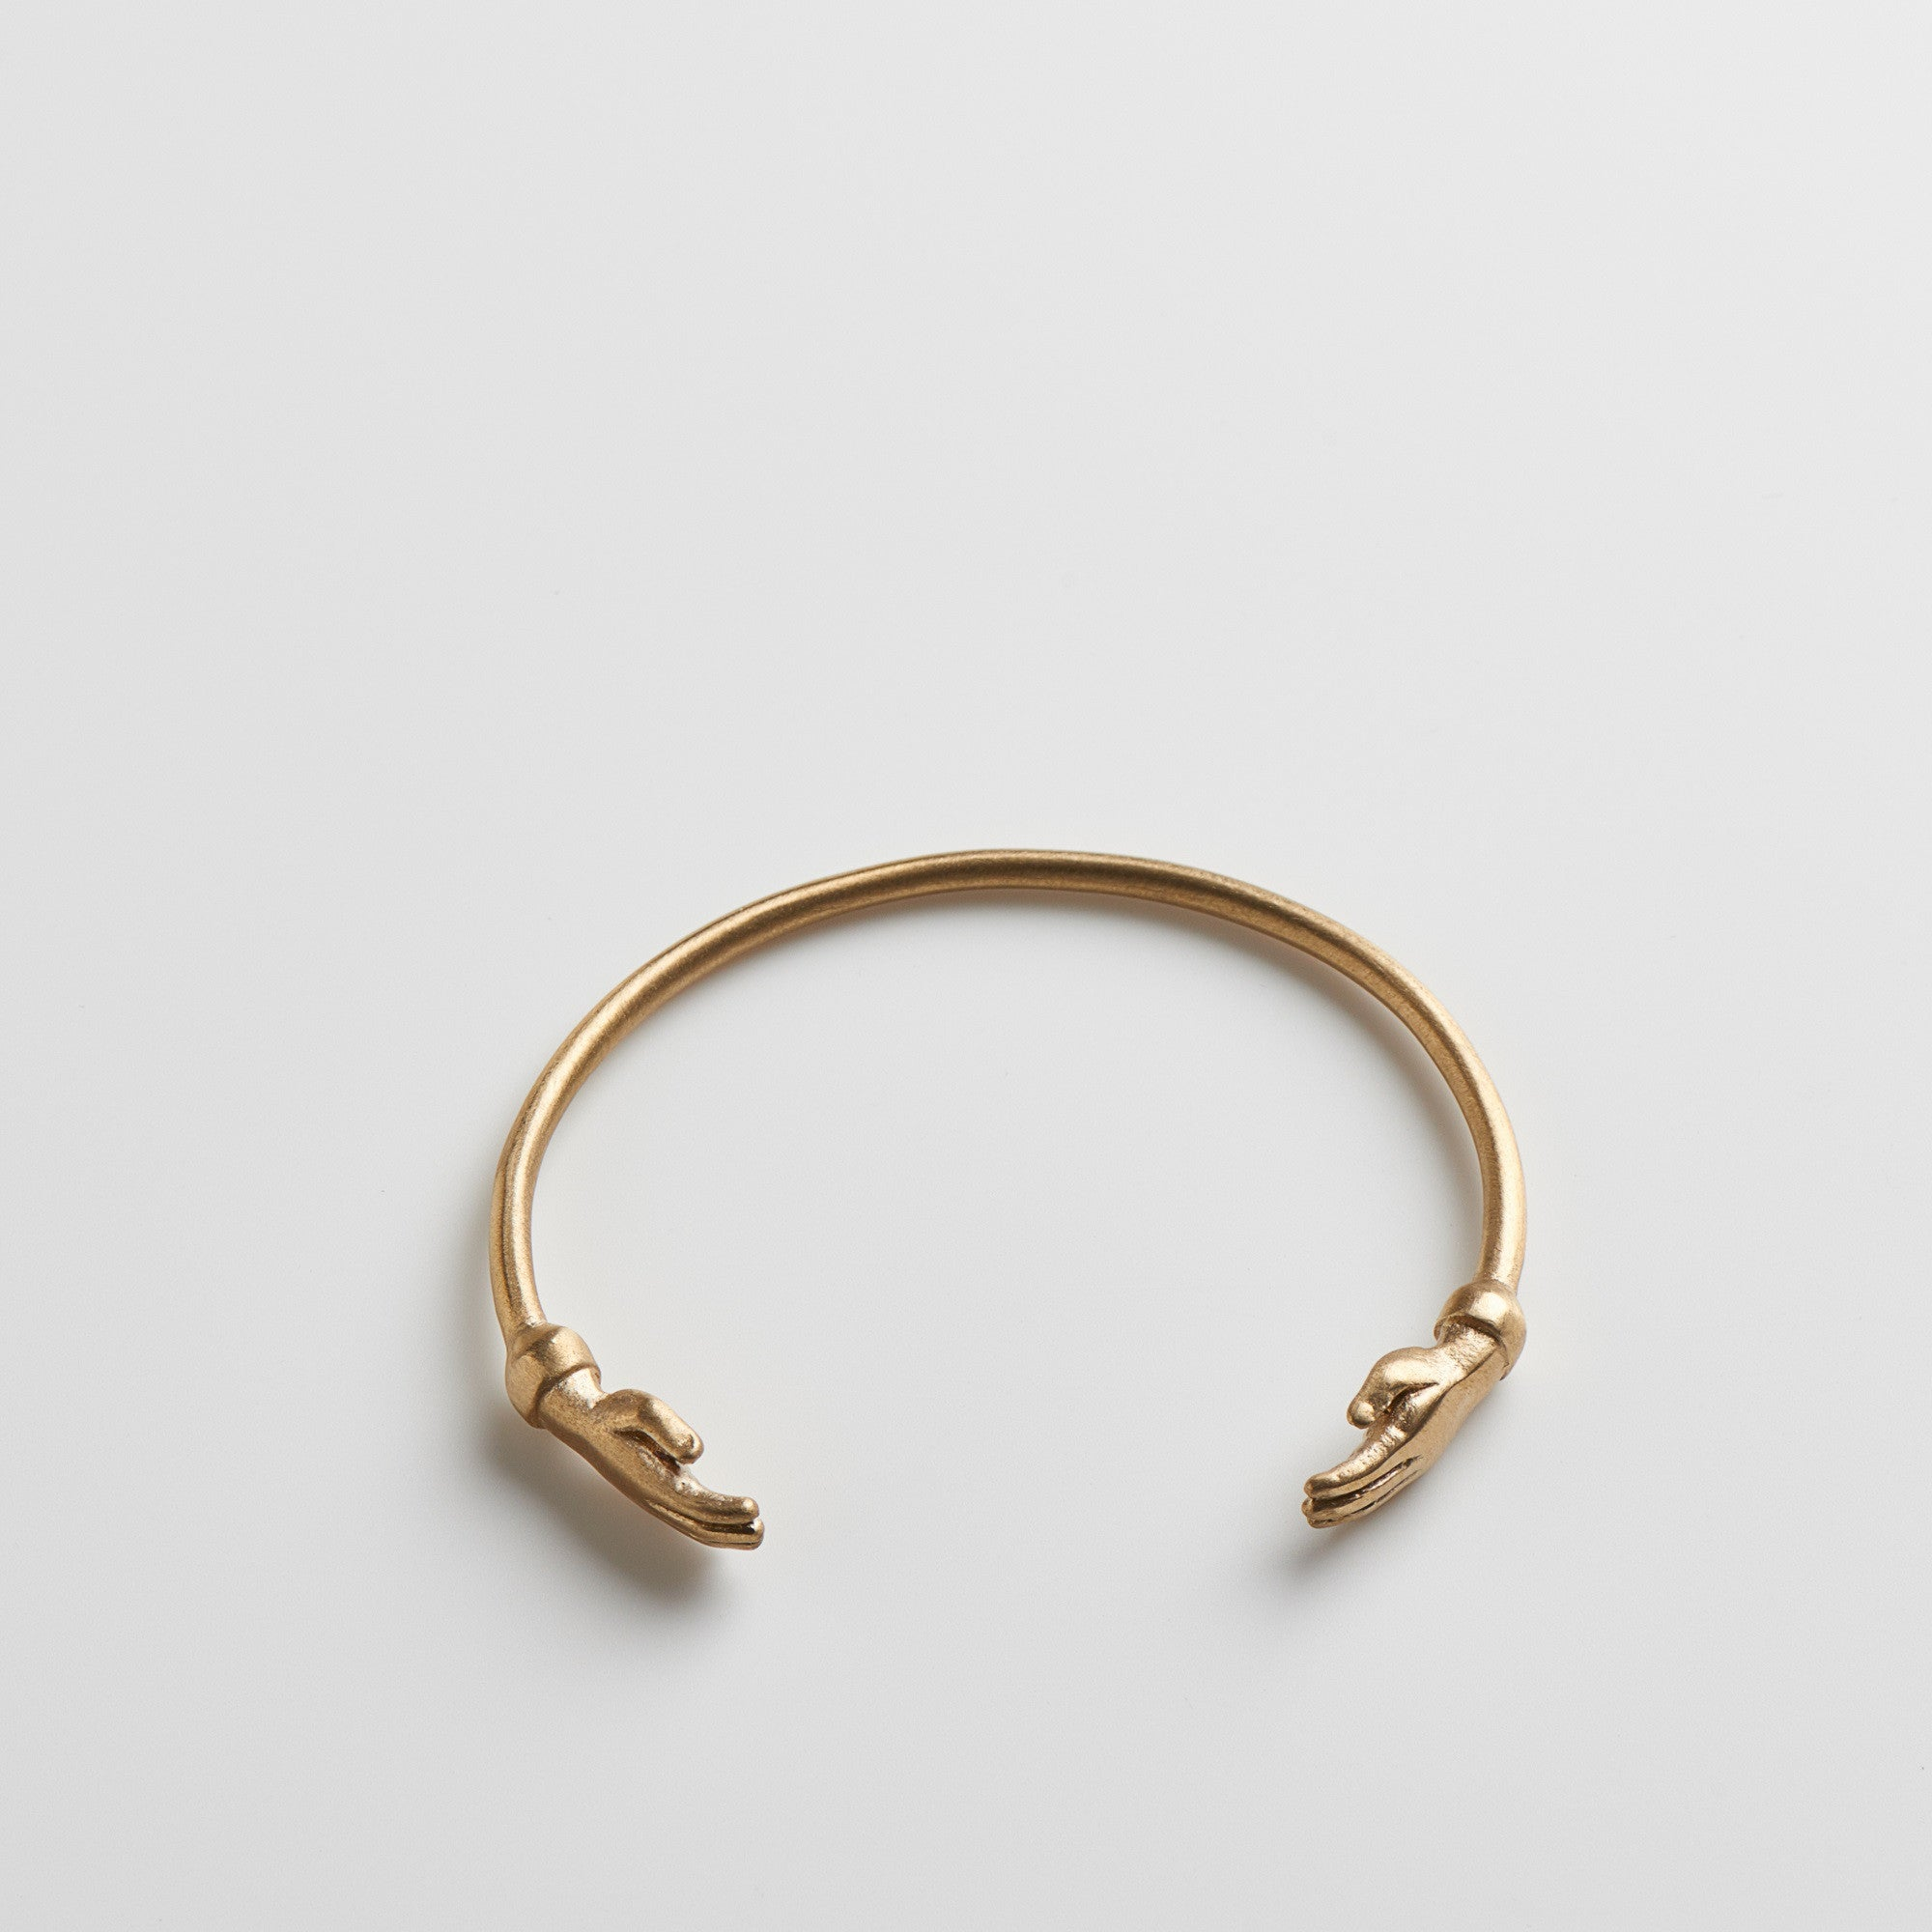 Hand Cuff - Brushed Brass